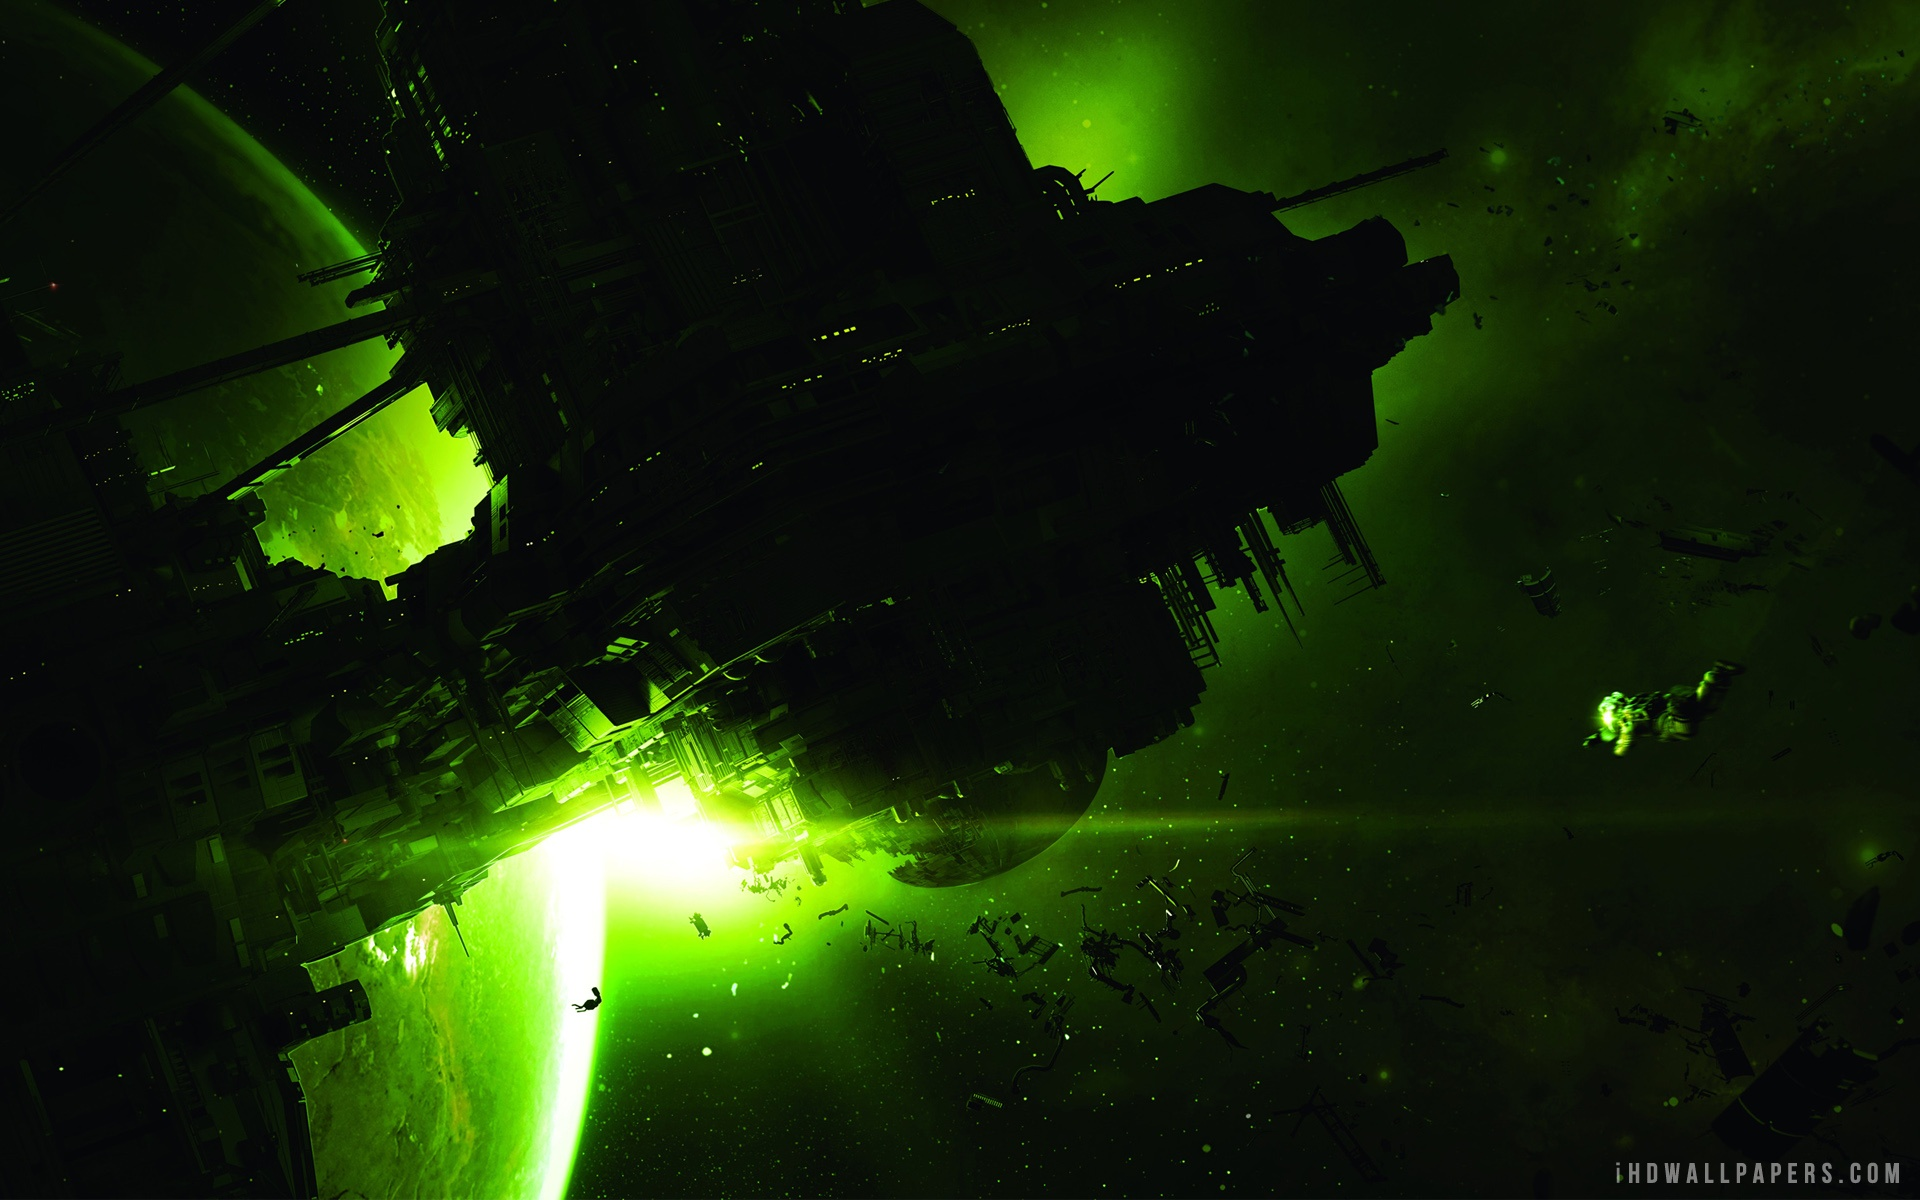 Alien Isolation Video Game wallpaper 2560x1440 1920x1200